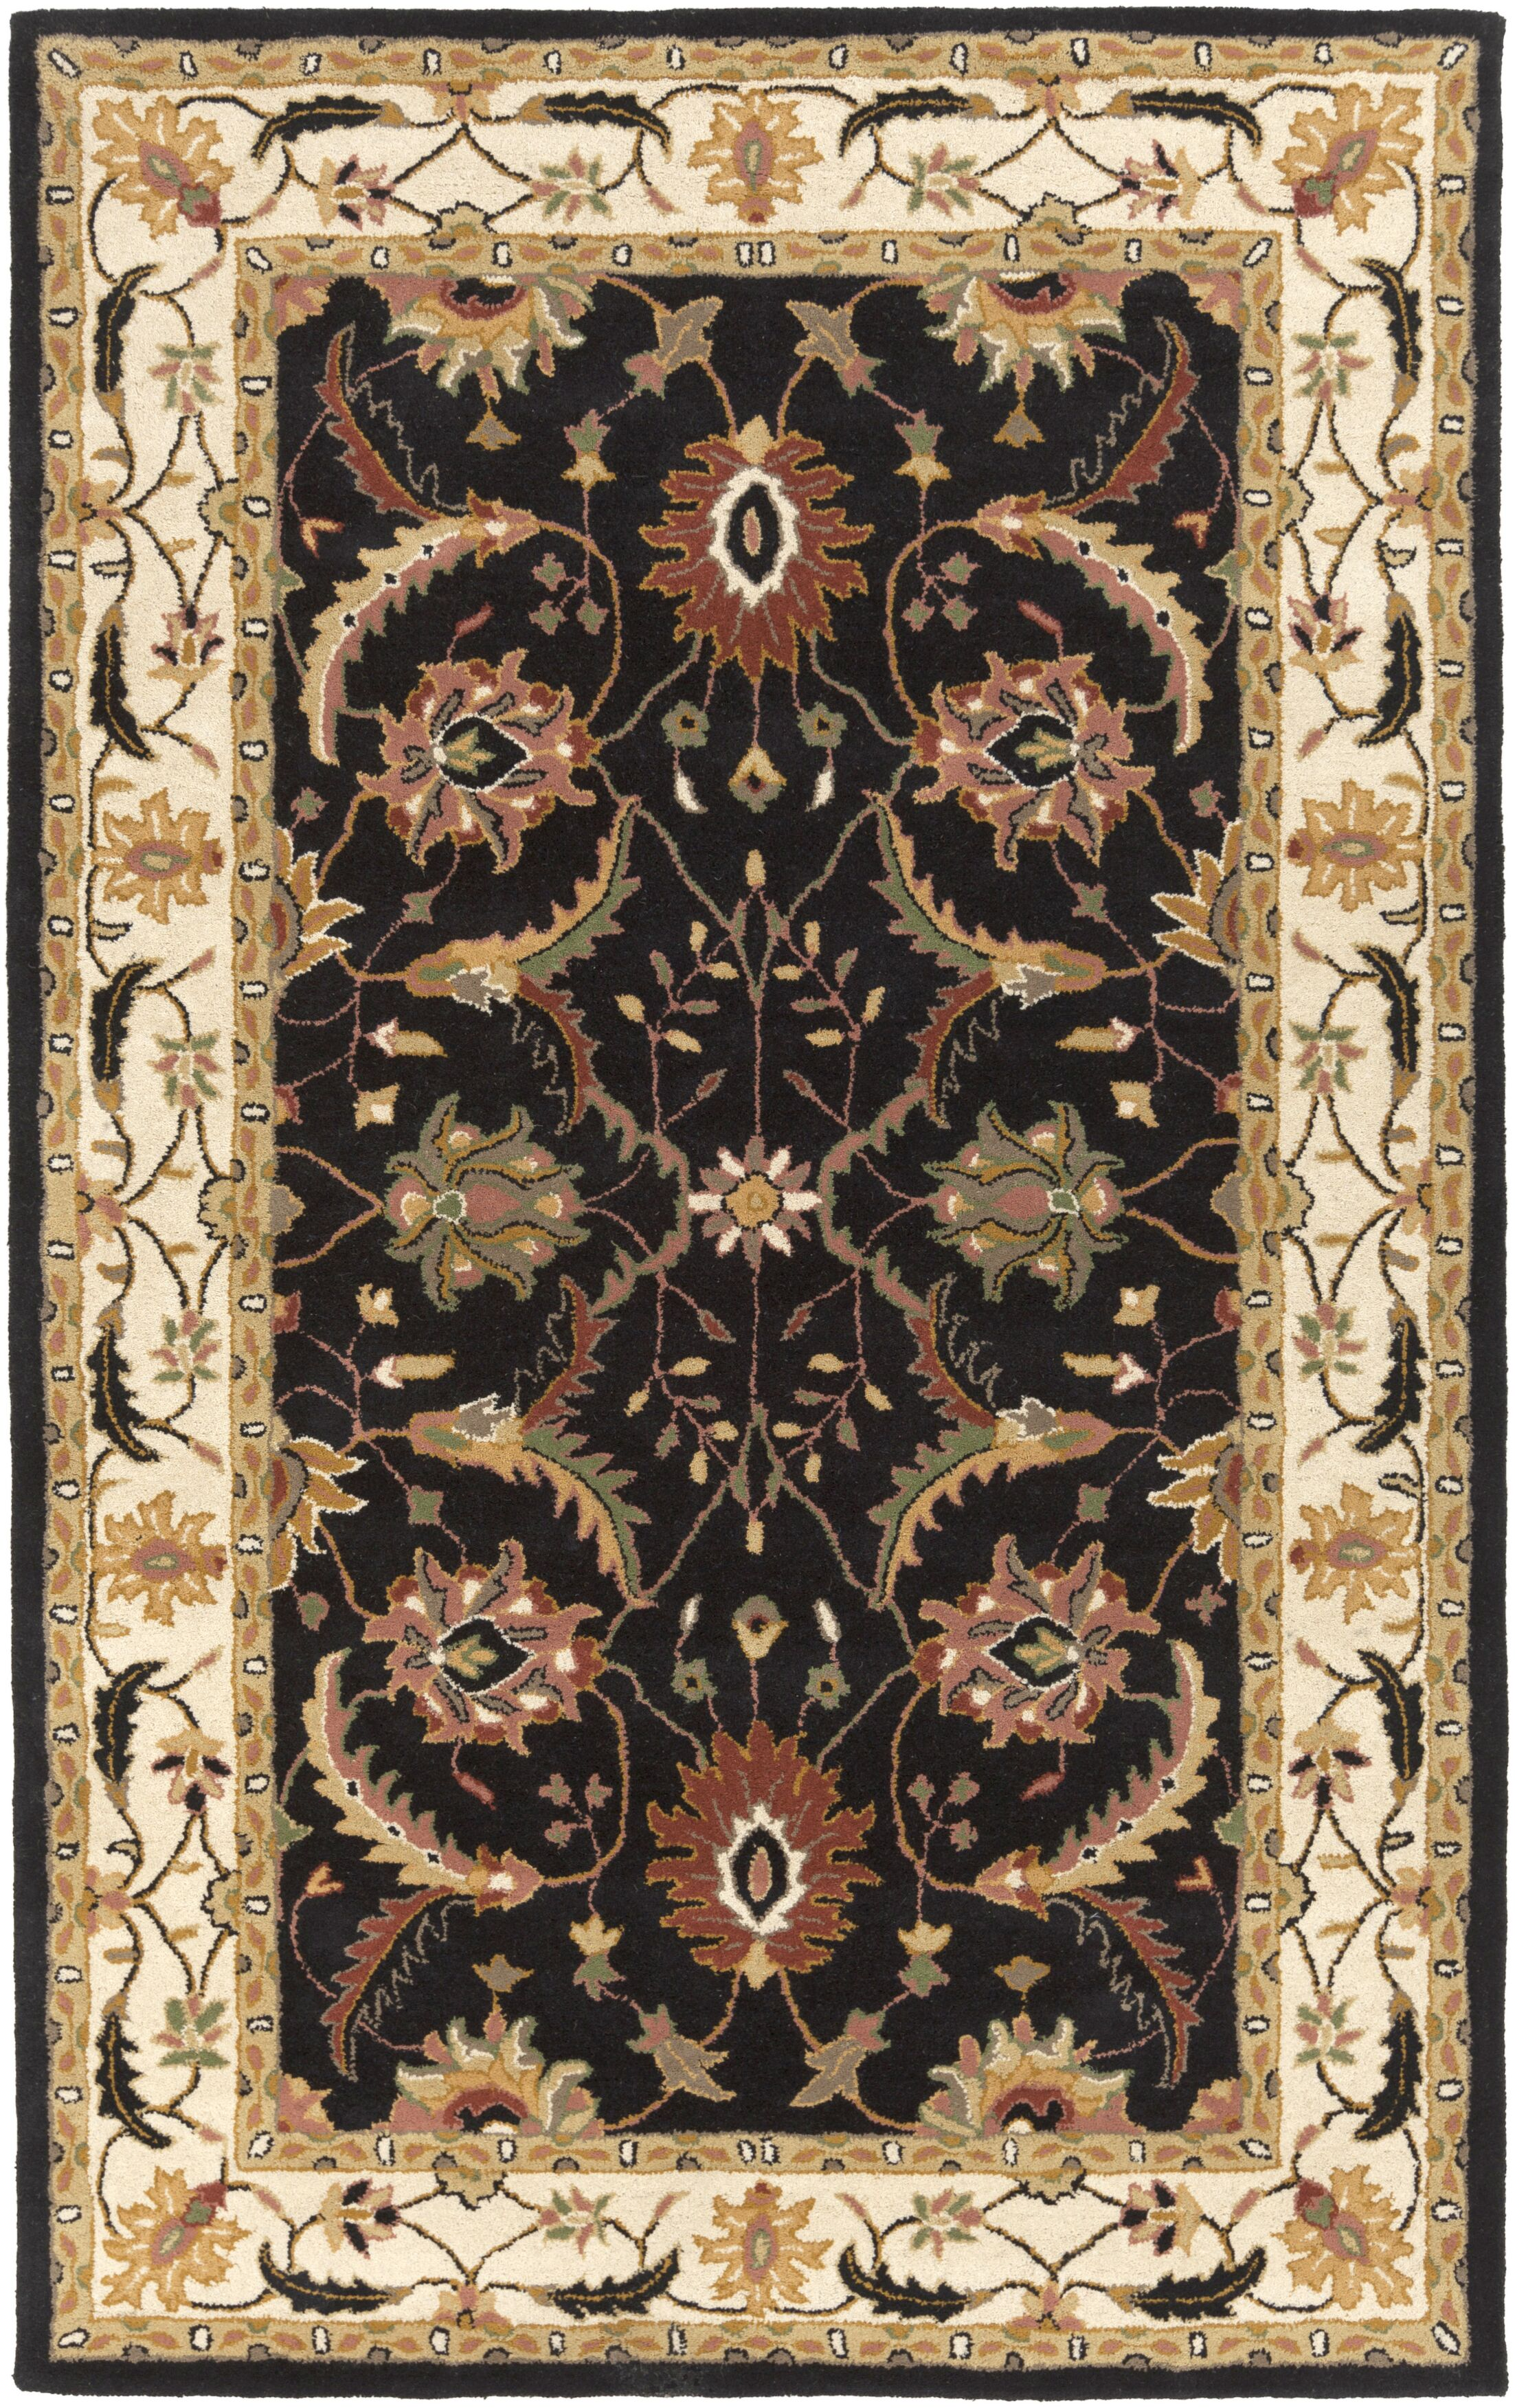 Vickers Hand-Tufted Black/Ivory Area Rug Rug Size: Rectangle 8' x 11'